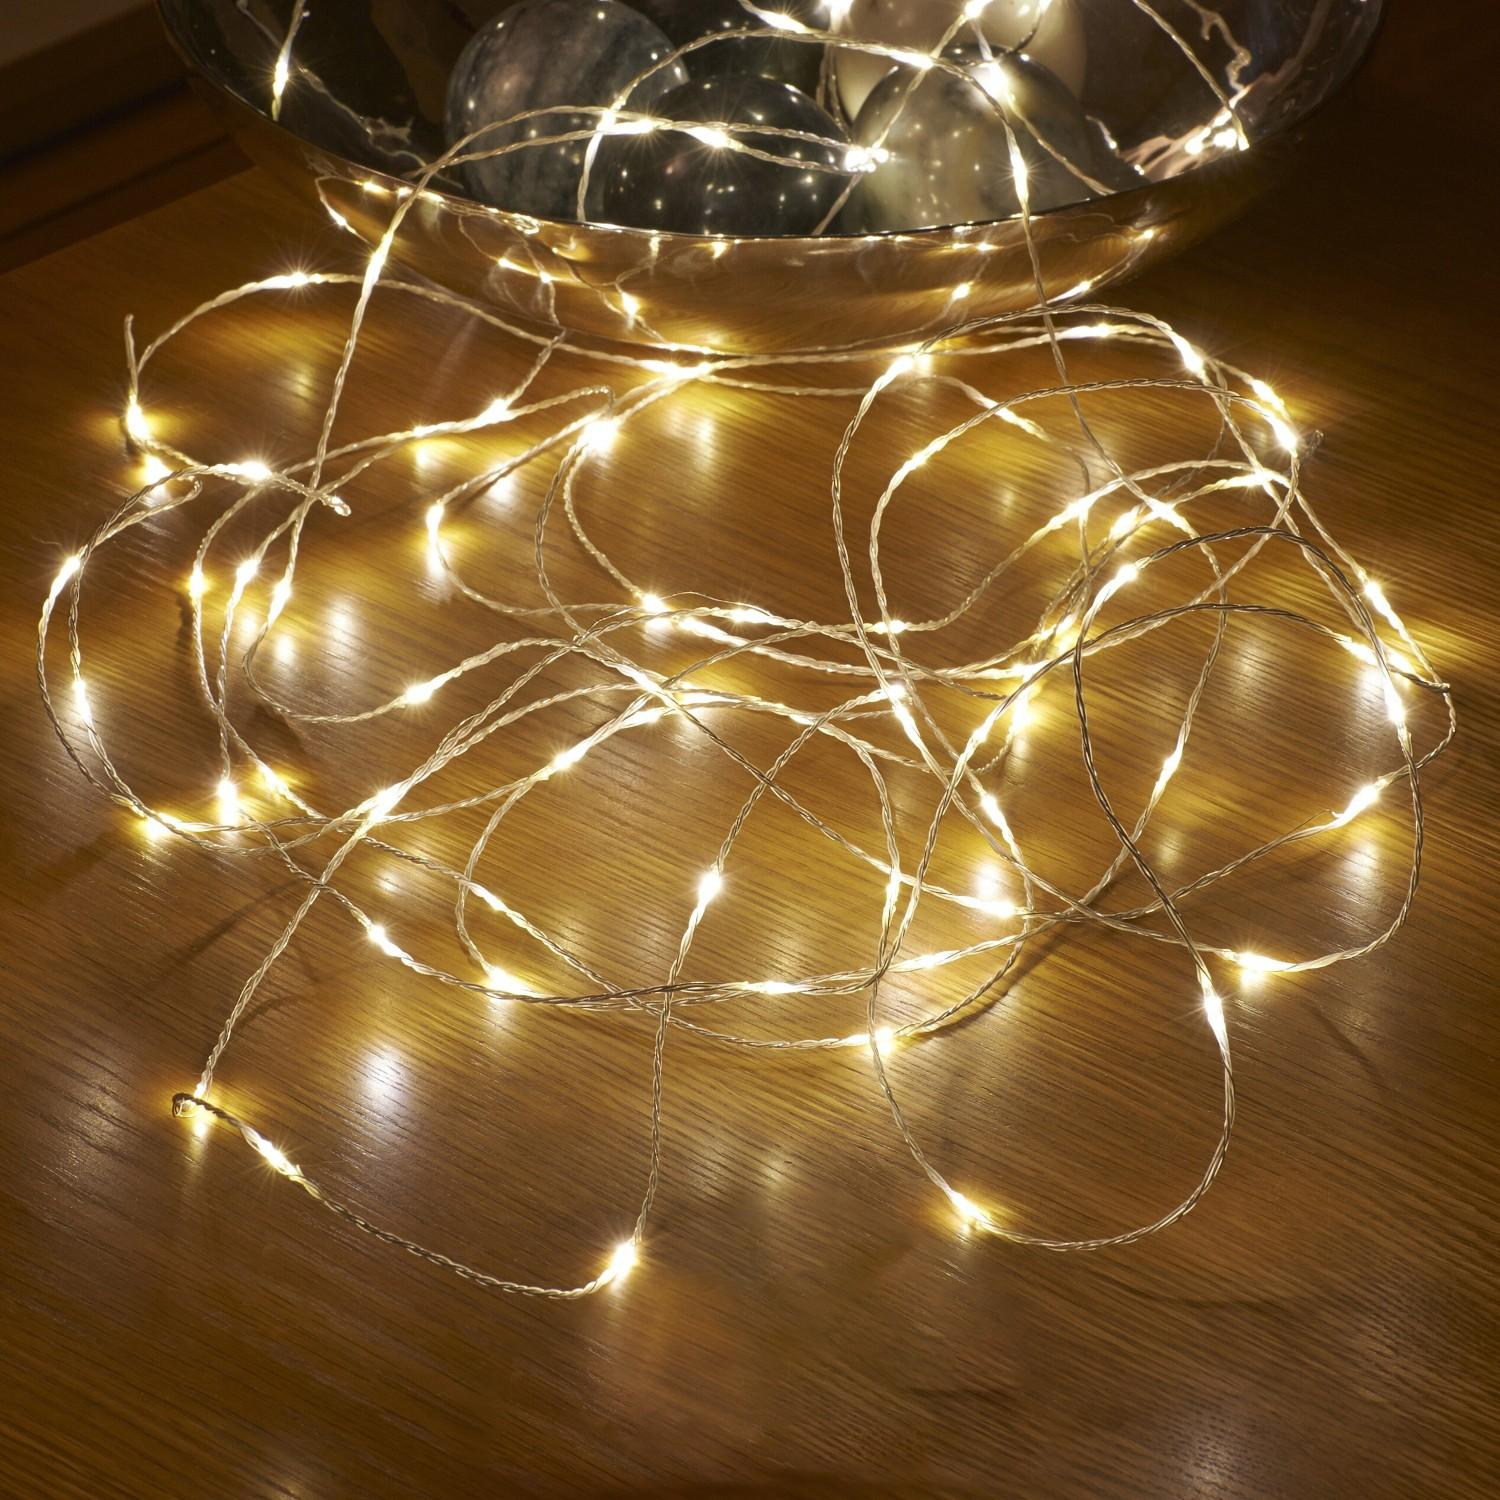 StarzDeals - 3 Meters 30 LED Battery operated Silver Wire - Warm White Singapore